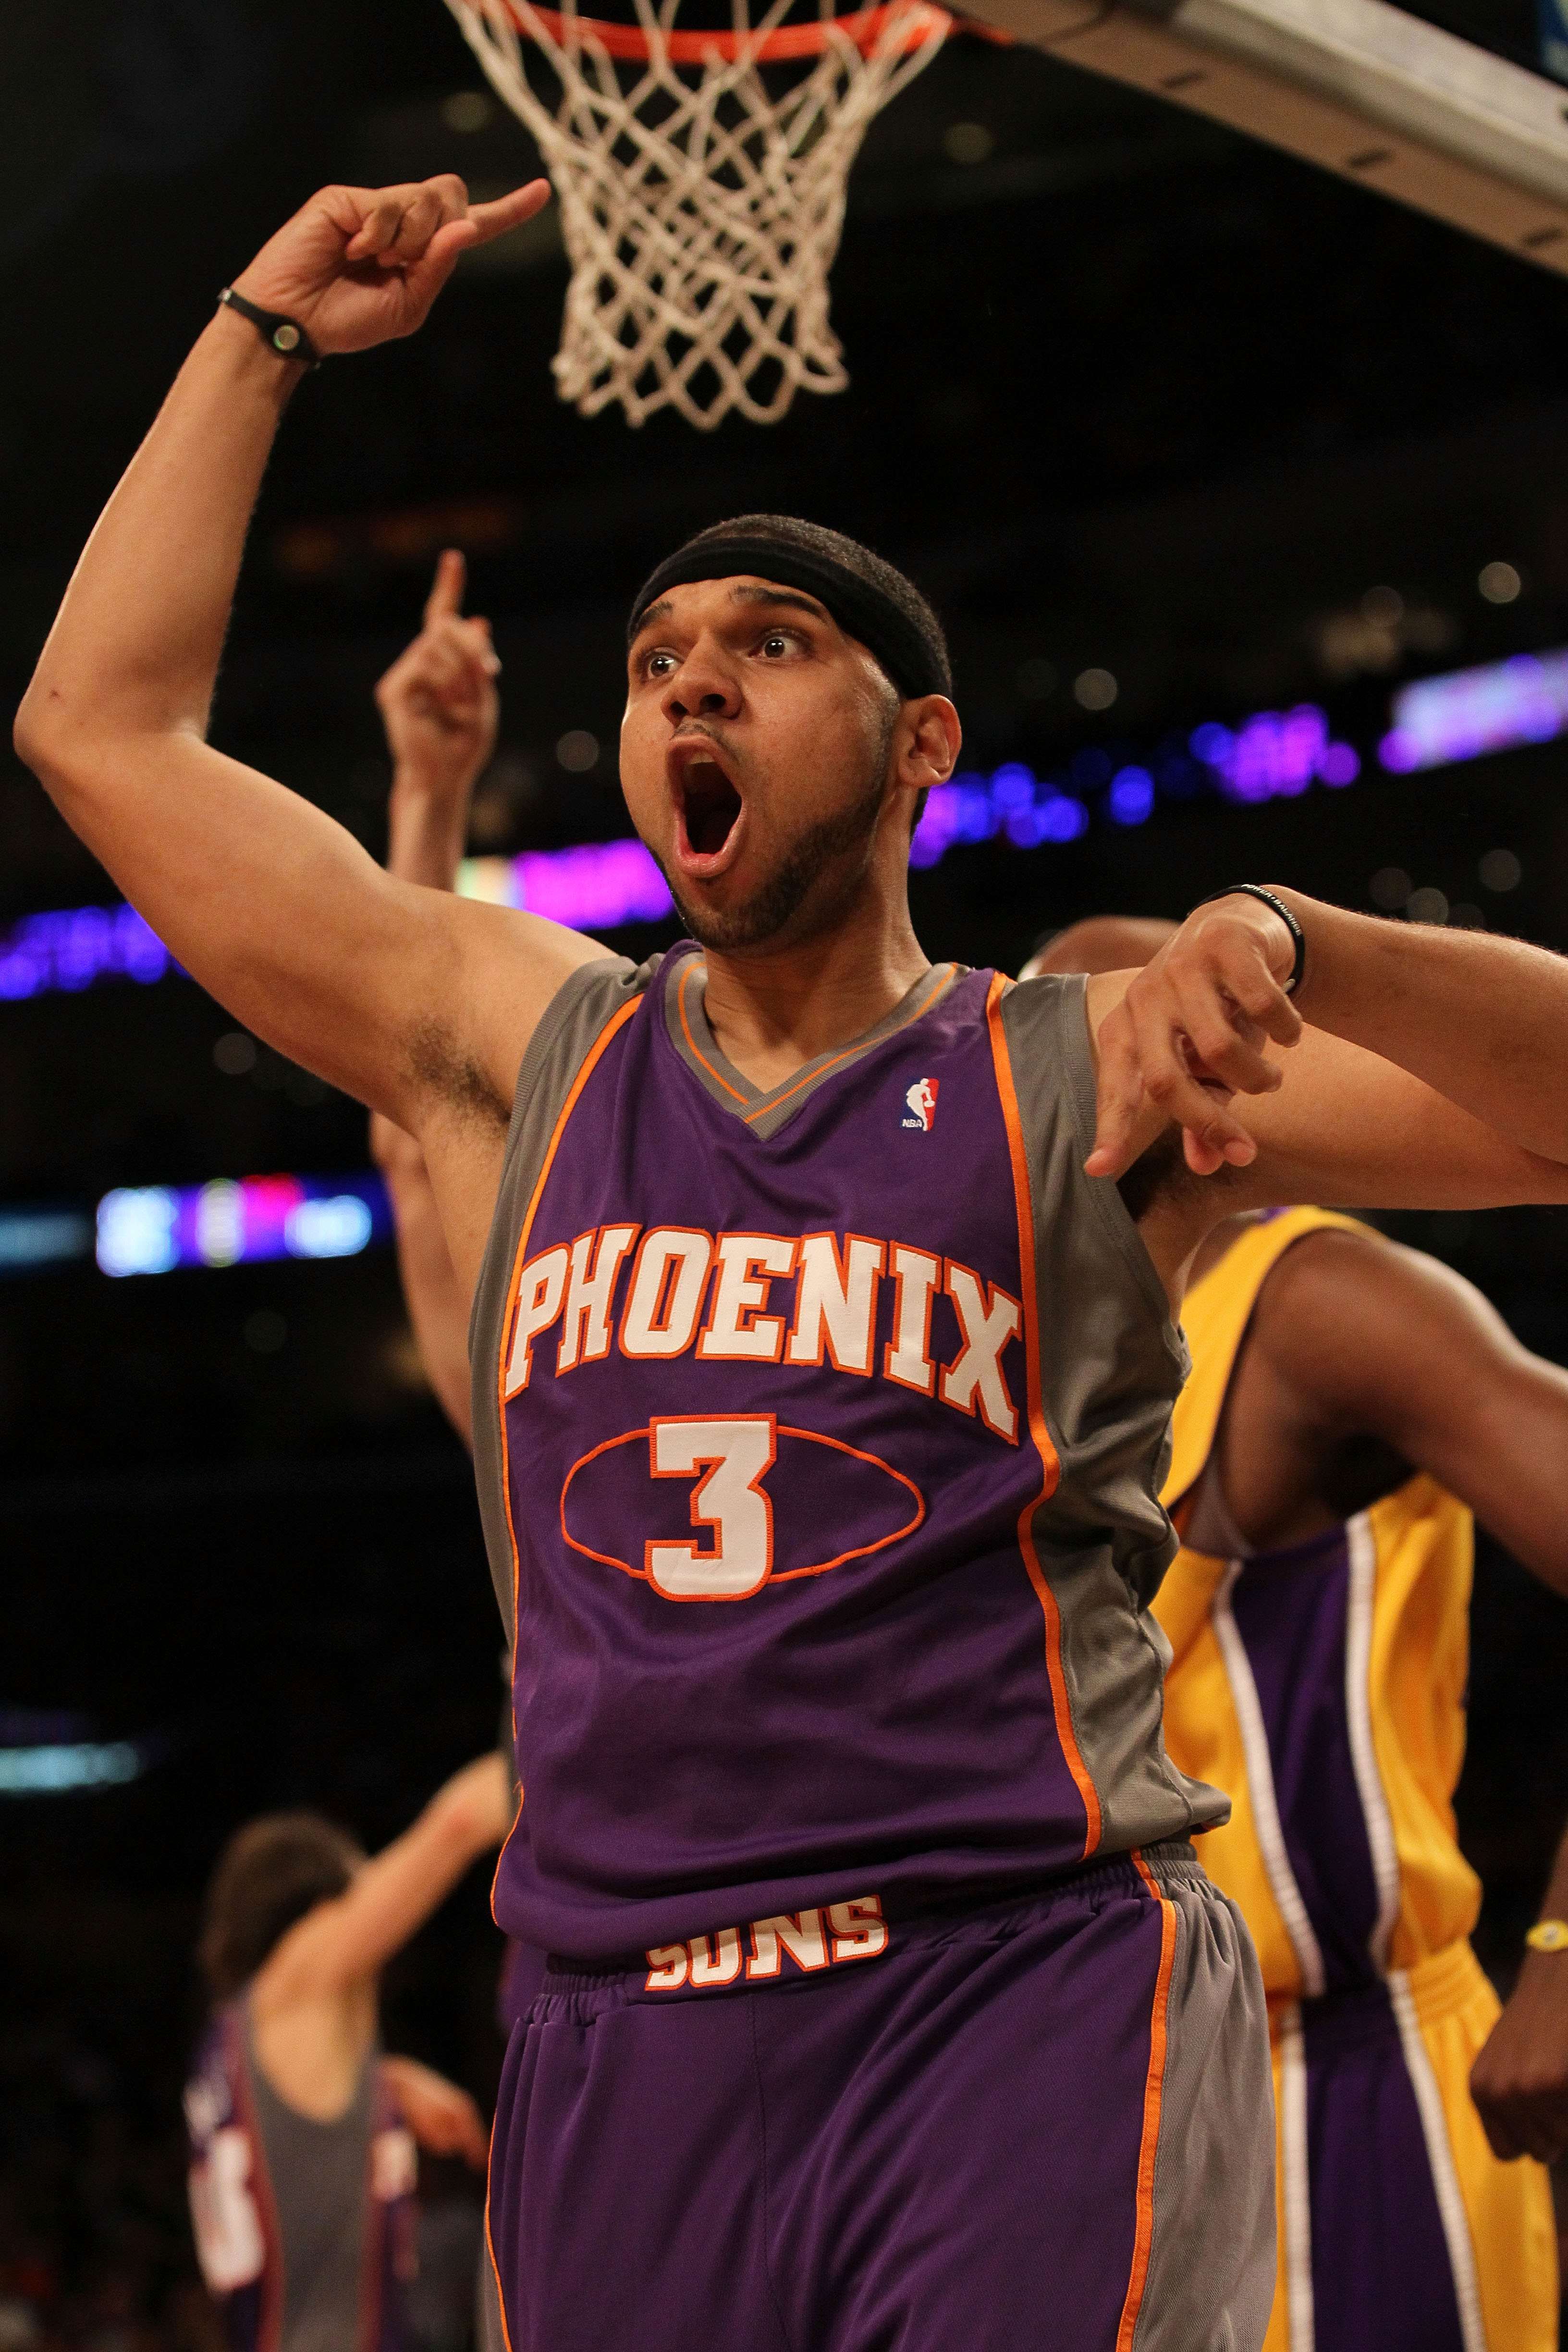 LOS ANGELES, CA - MAY 27:  Jared Dudley #3 of the Phoenix Suns reacts to a play by the Los Angeles Lakers in the first half of Game Five of the Western Conference Finals during the 2010 NBA Playoffs at Staples Center on May 27, 2010 in Los Angeles, Califo